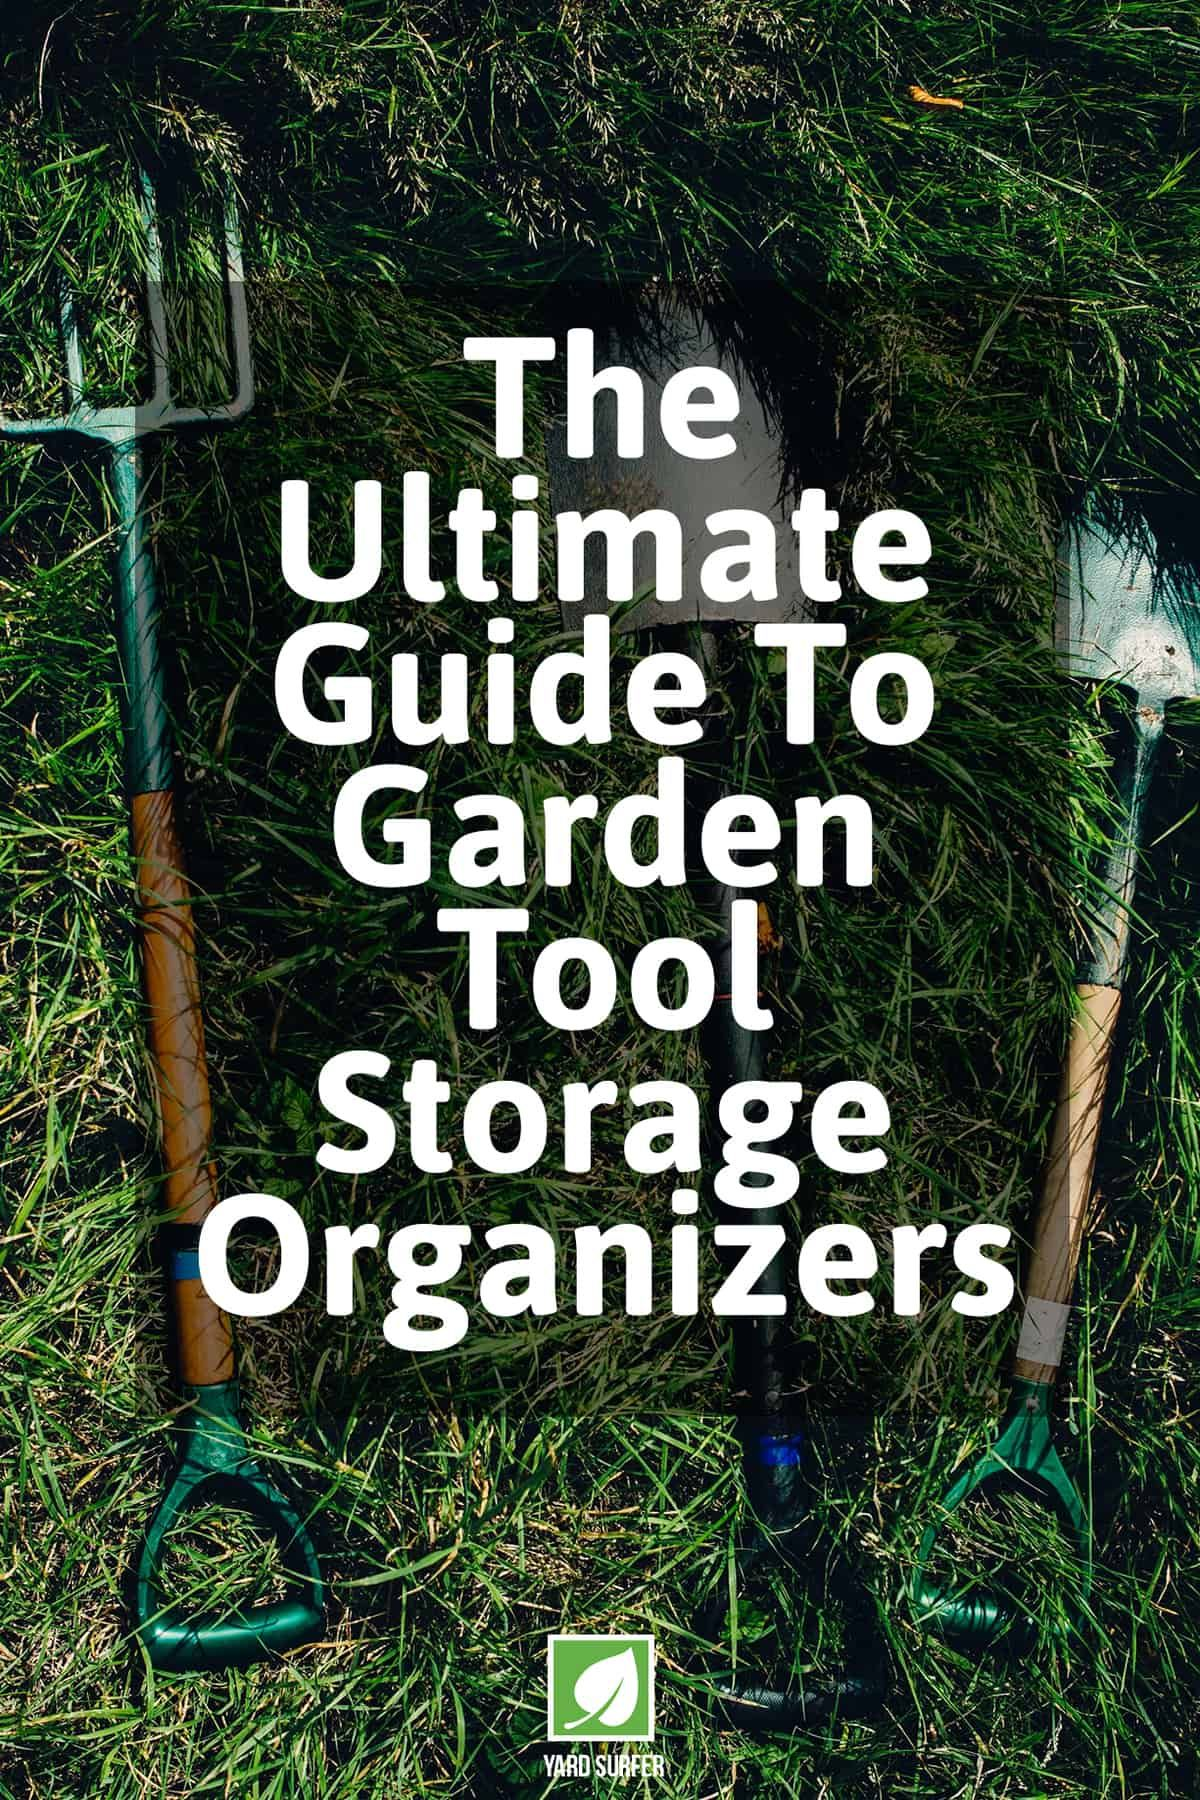 The Ultimate Guide To Garden Tool Storage Organizers Garden Tool